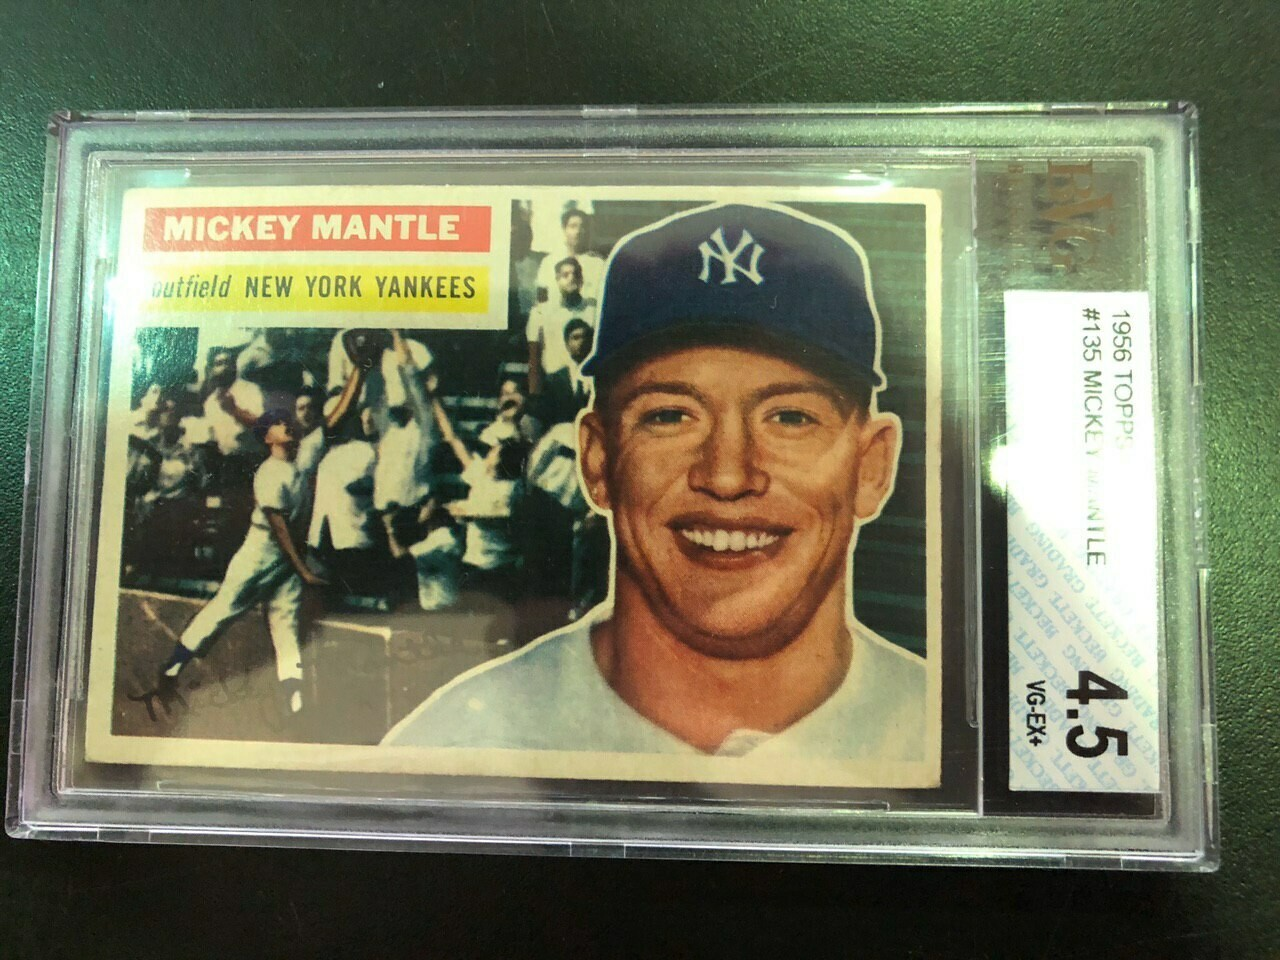 1956 Topps #135 Mickey Mantle, Beckett graded 4.5, $1200